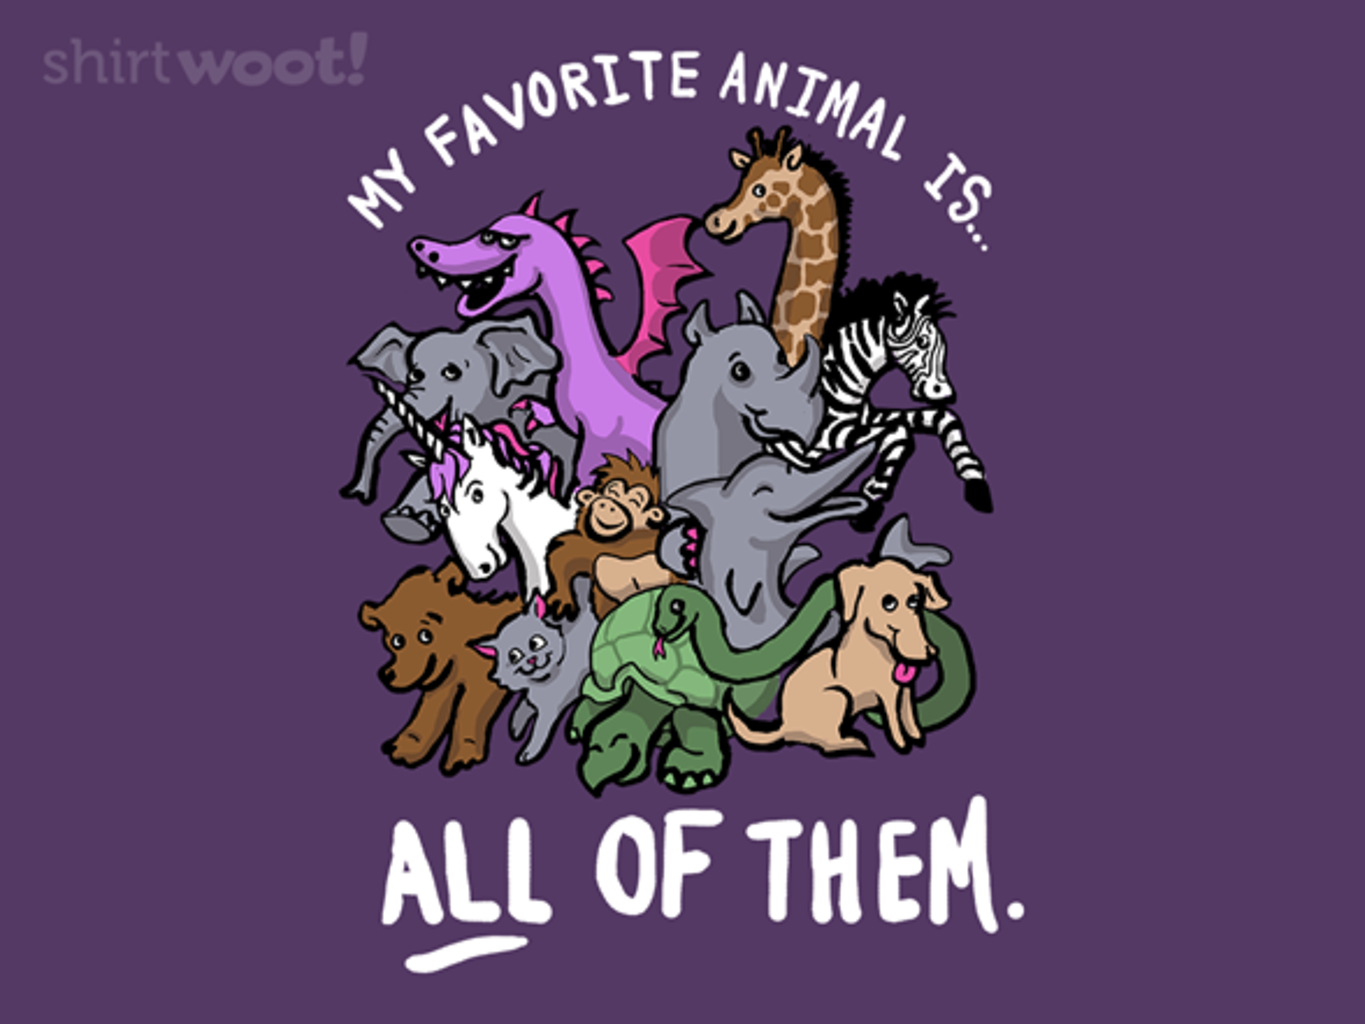 Woot!: What's Your Favorite Animal? - $15.00 + Free shipping